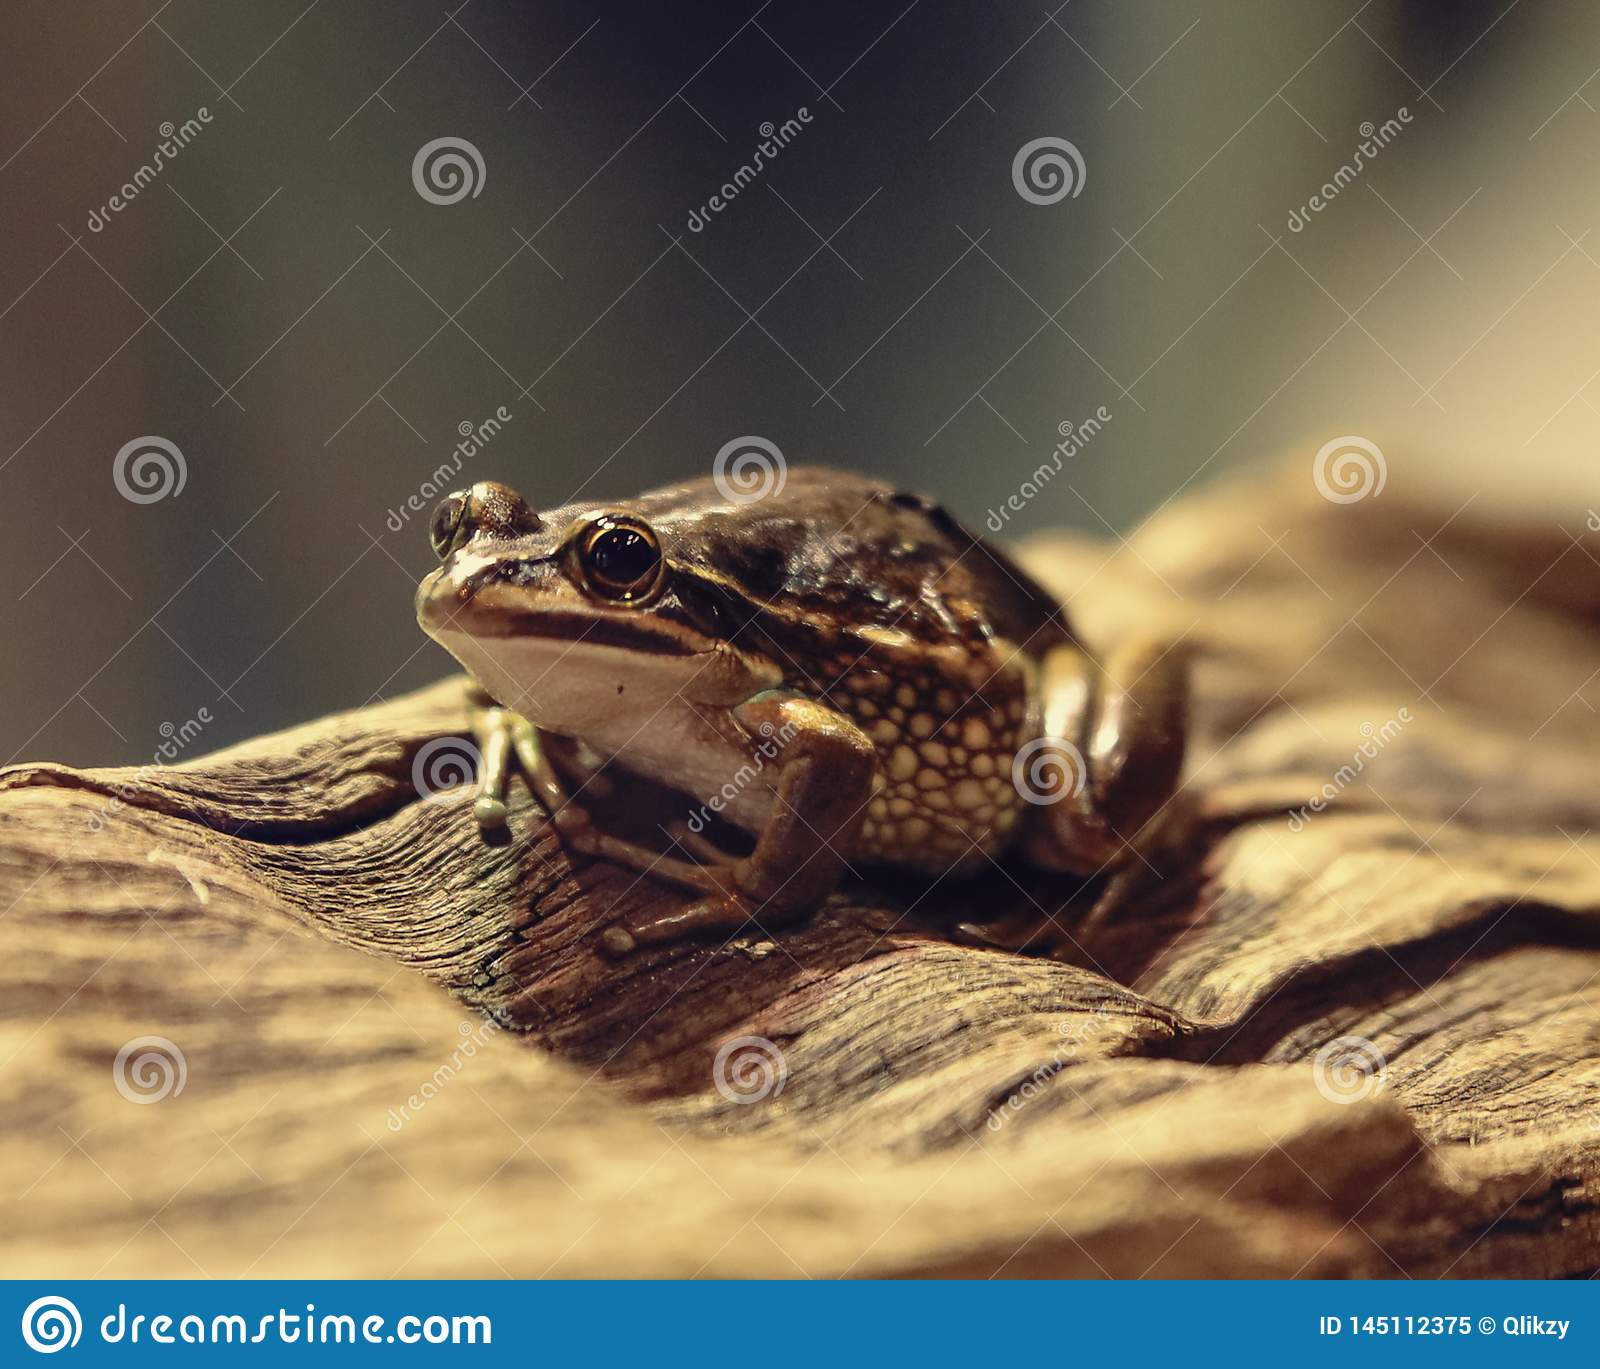 Brown frog climbing on a tree bark looking something